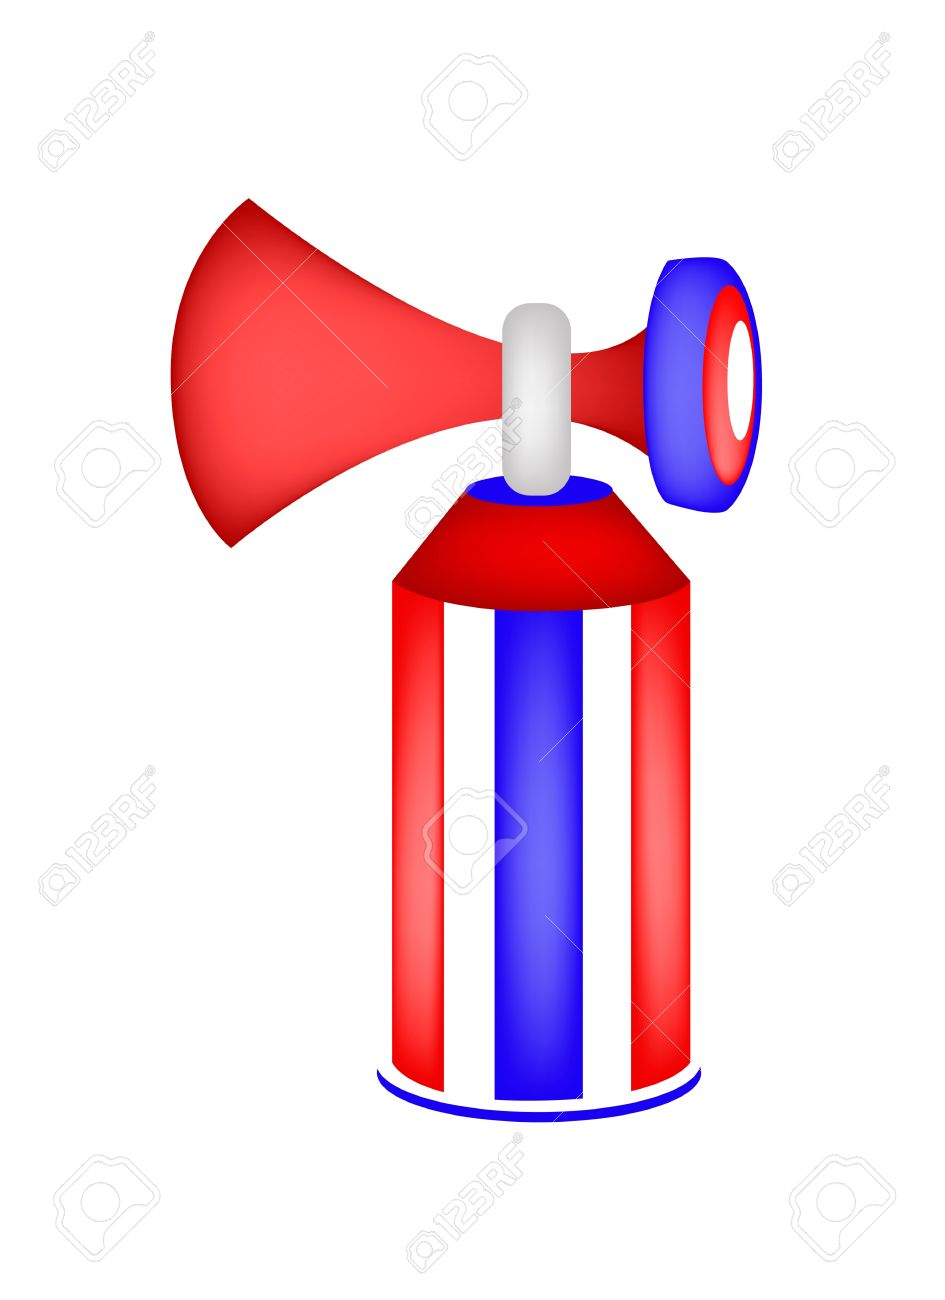 An Illustration Of Air Horn In Red, Blue And White Colors For.